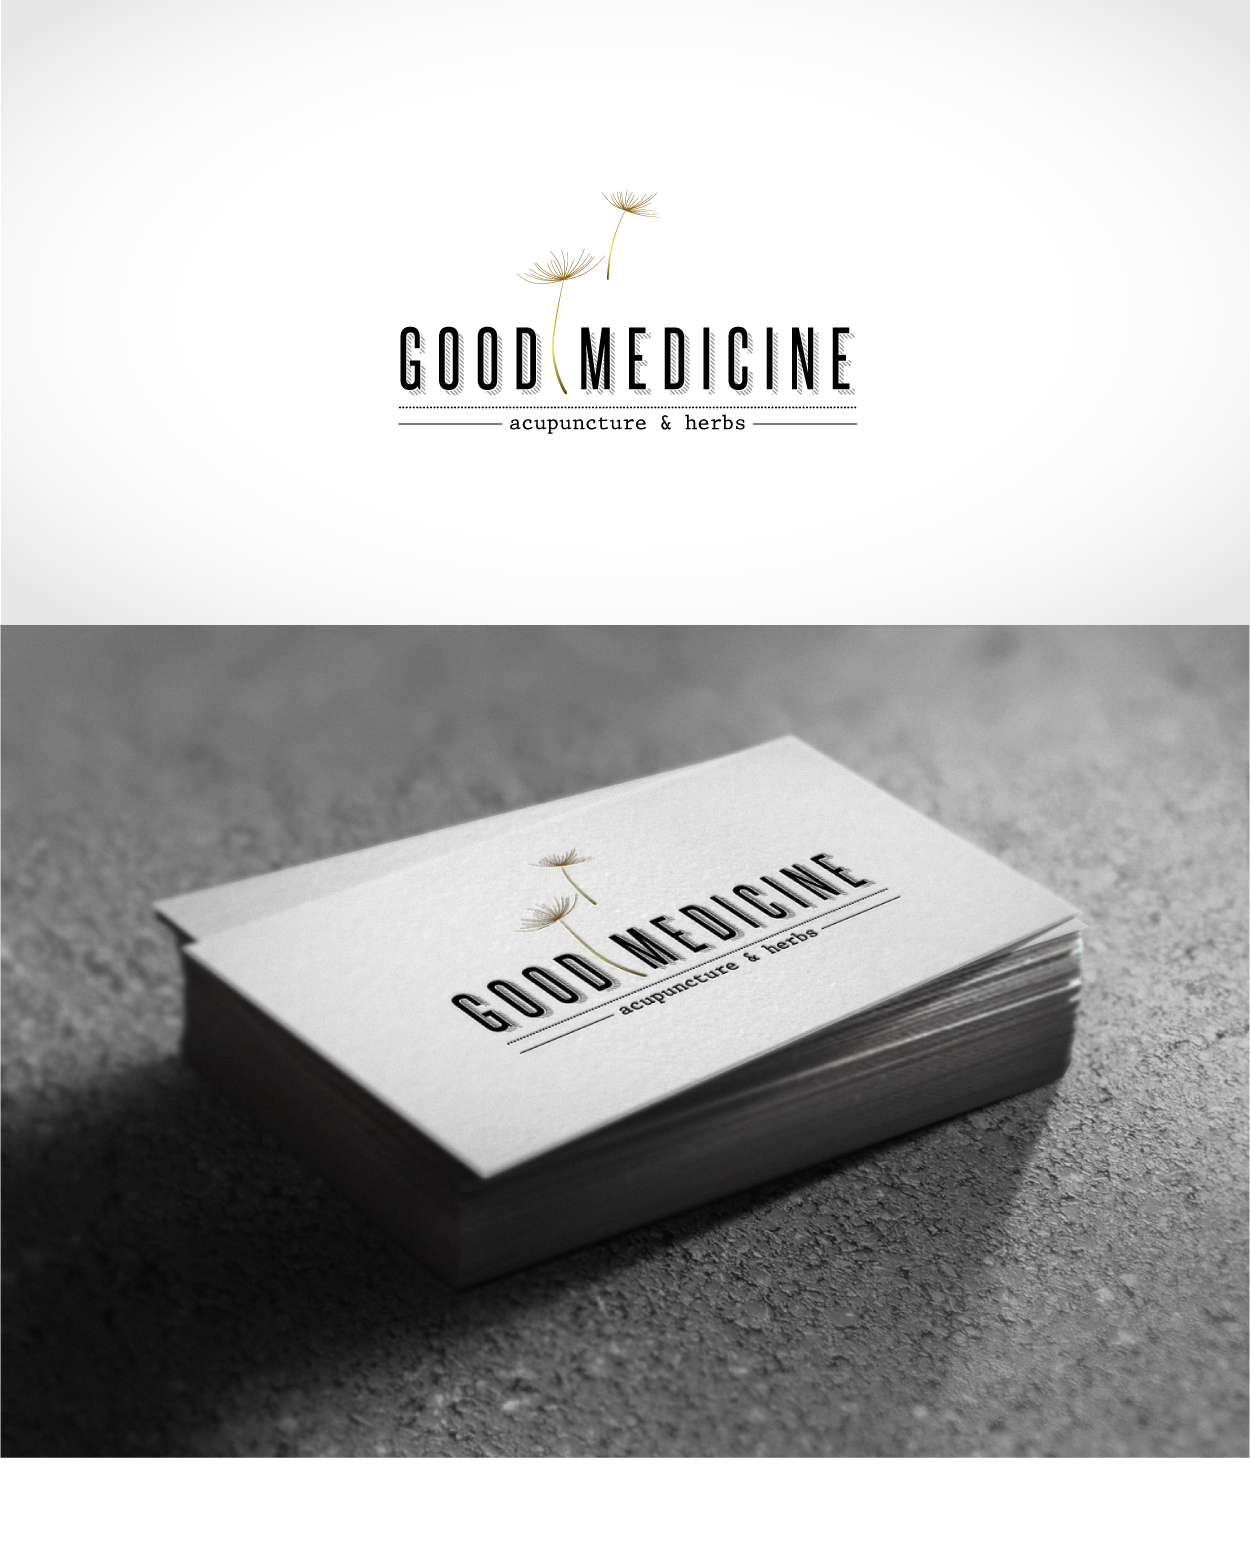 Help! Good Medicine Acupuncture & Herbs needs a logo that stands out.